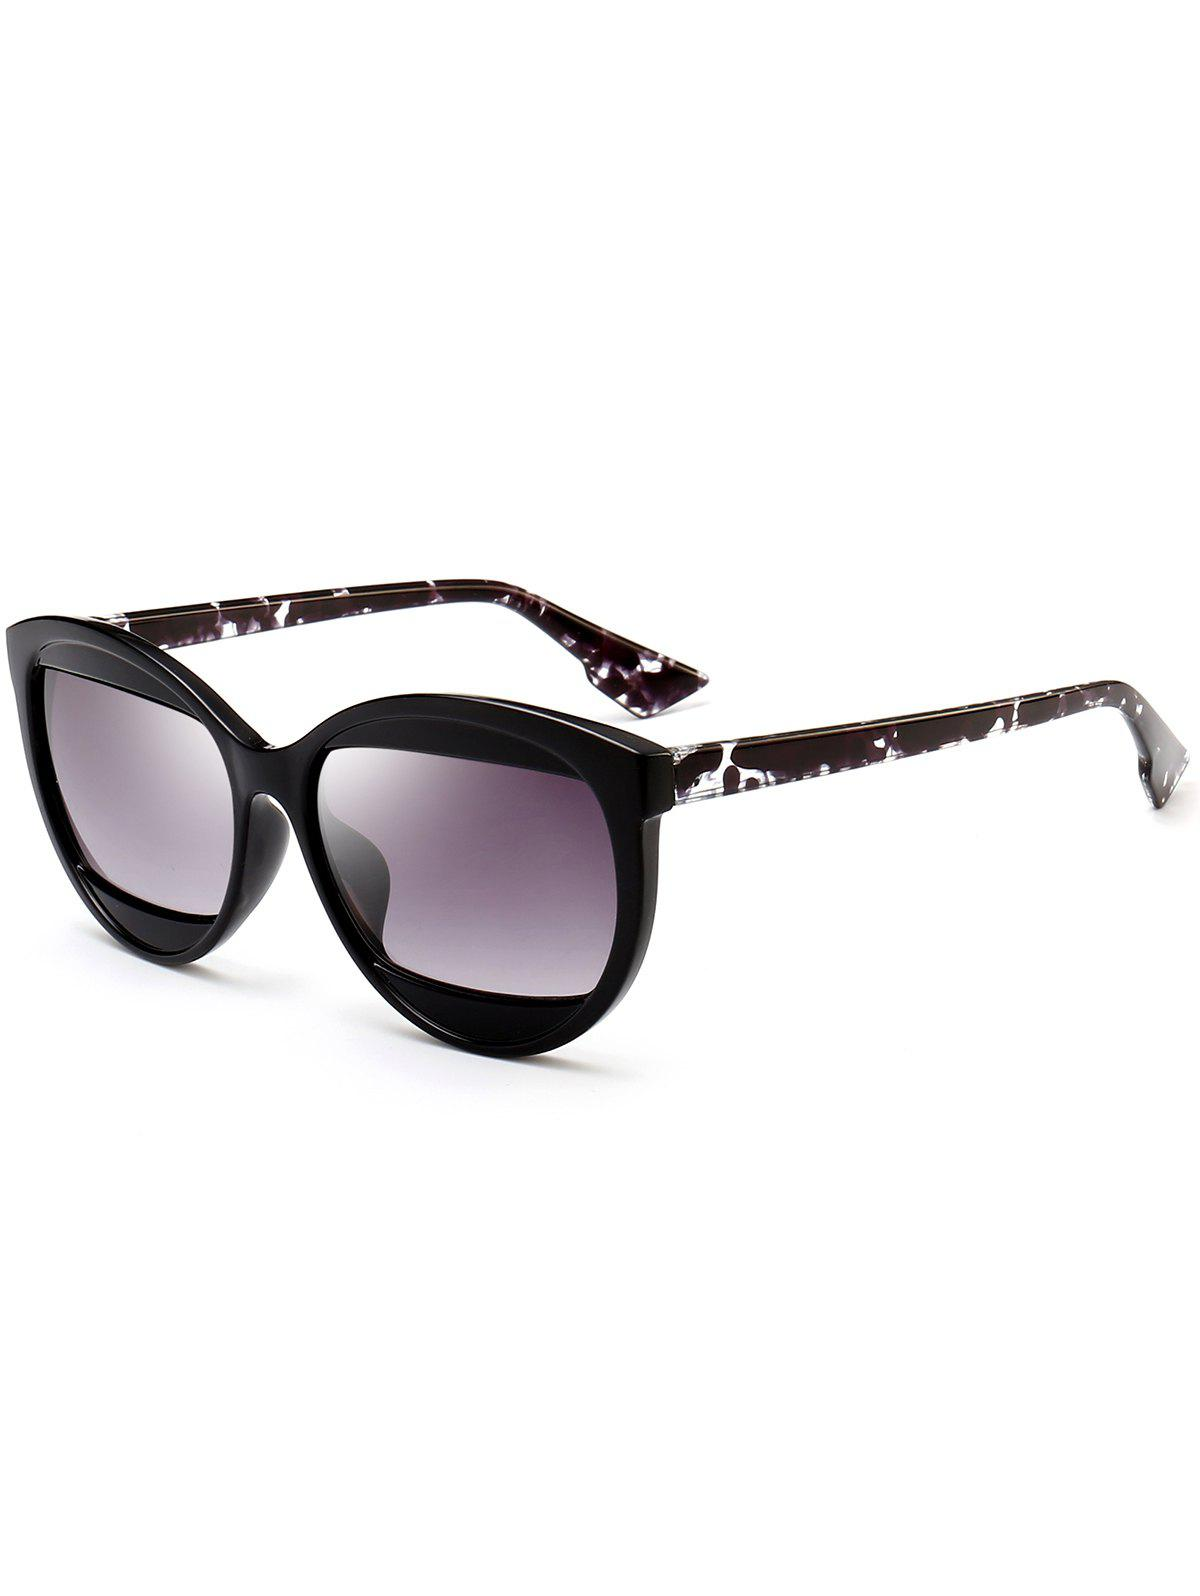 Fashion Eyebrow Embellished Cat Eye Sunglasses